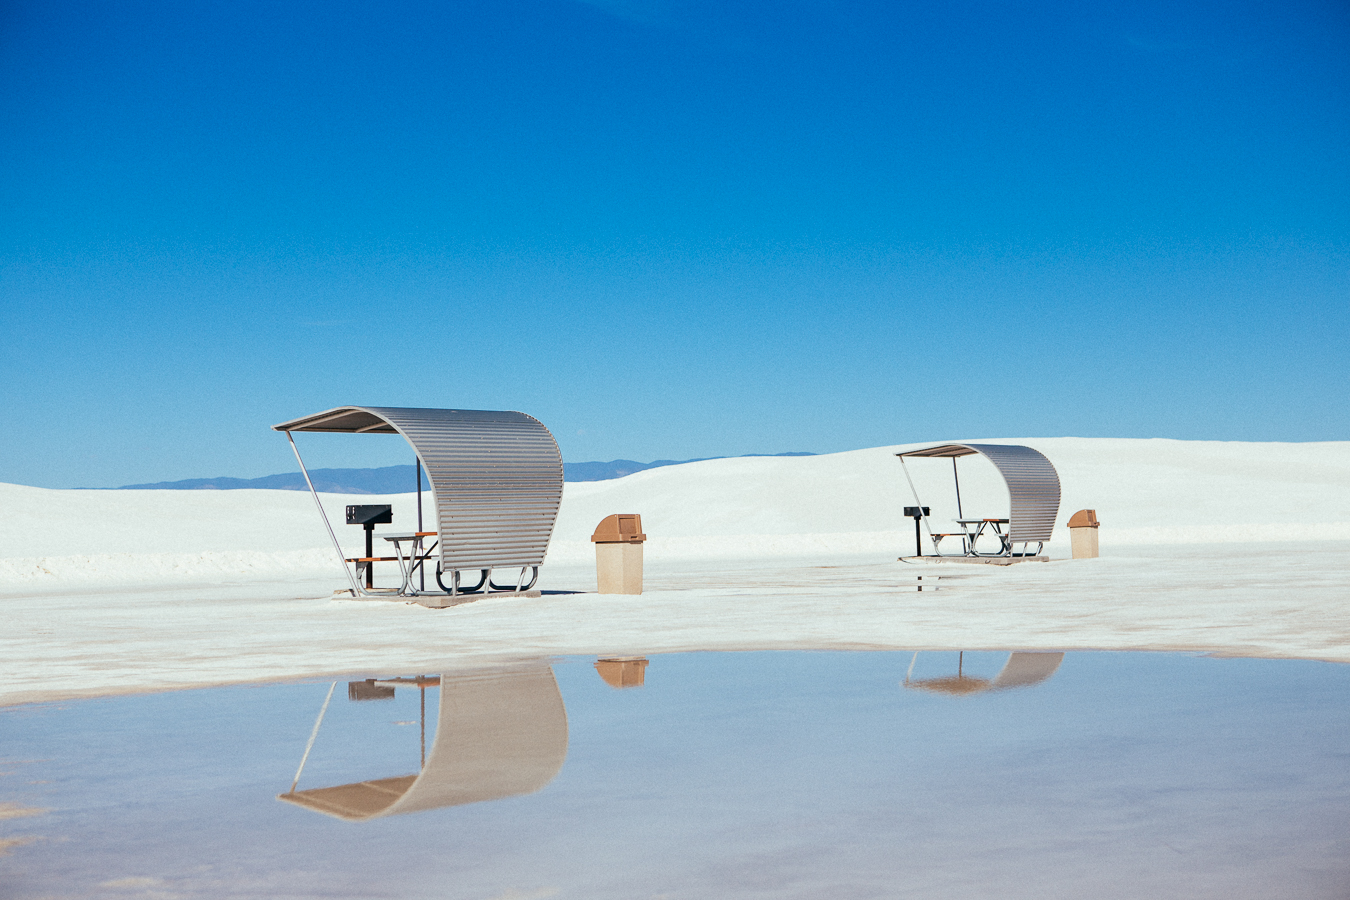 If the architect of these shelters ranfor president, I'd vote for that person.